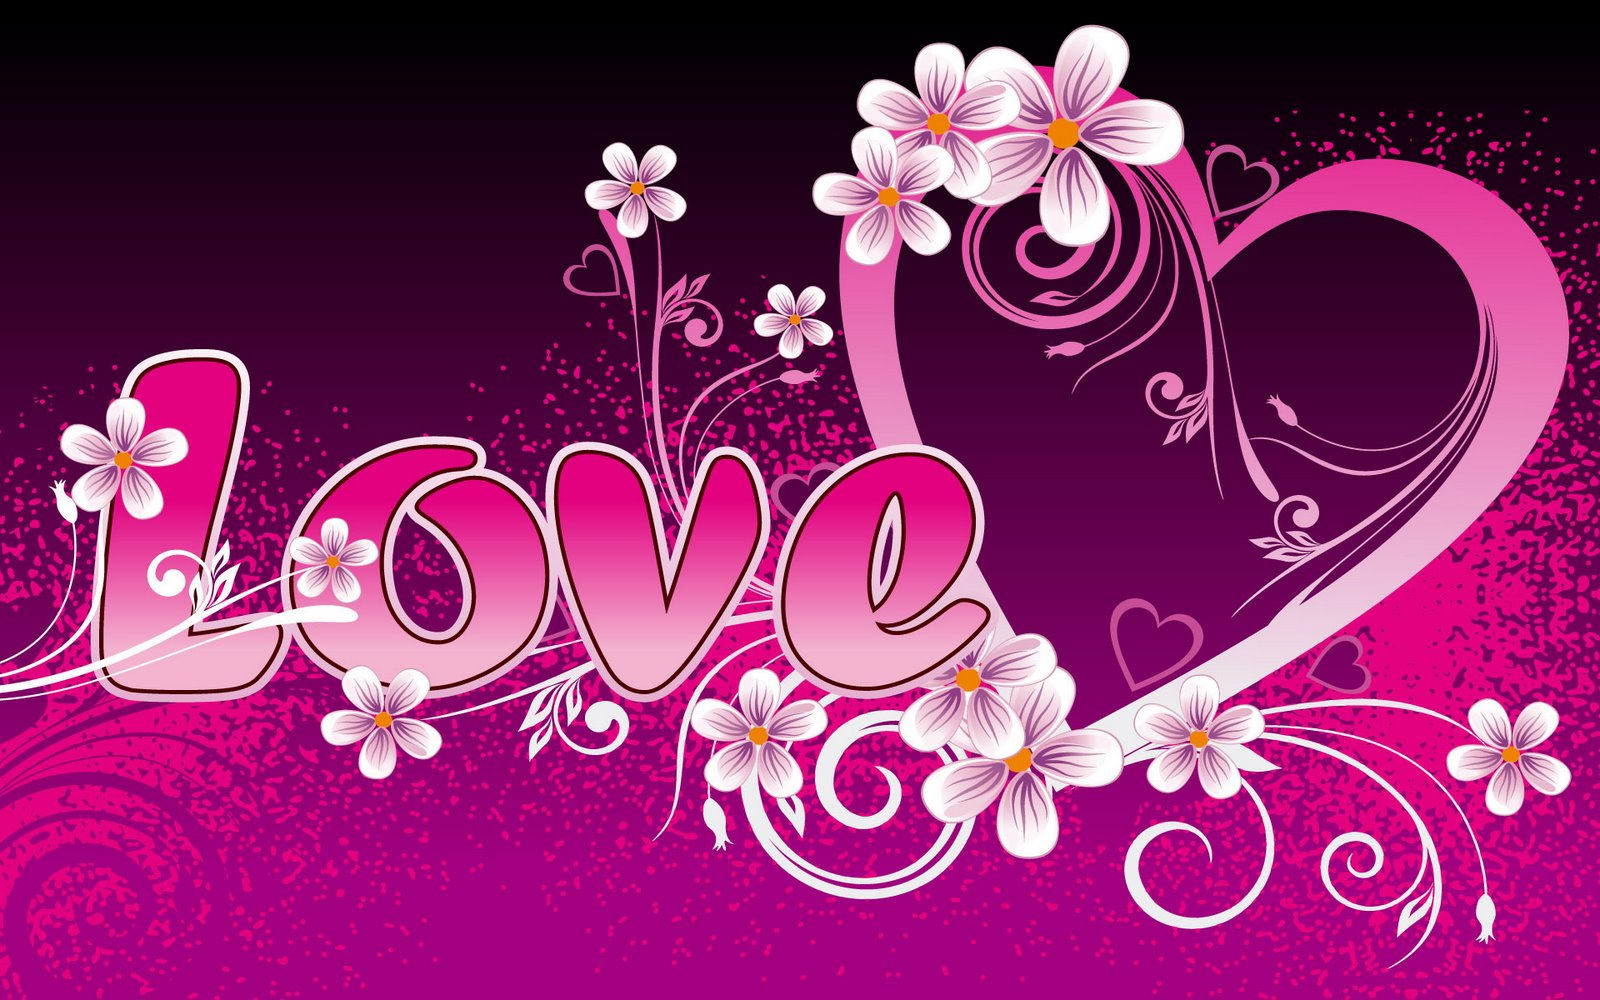 free love wallpapers 000 - photo #1